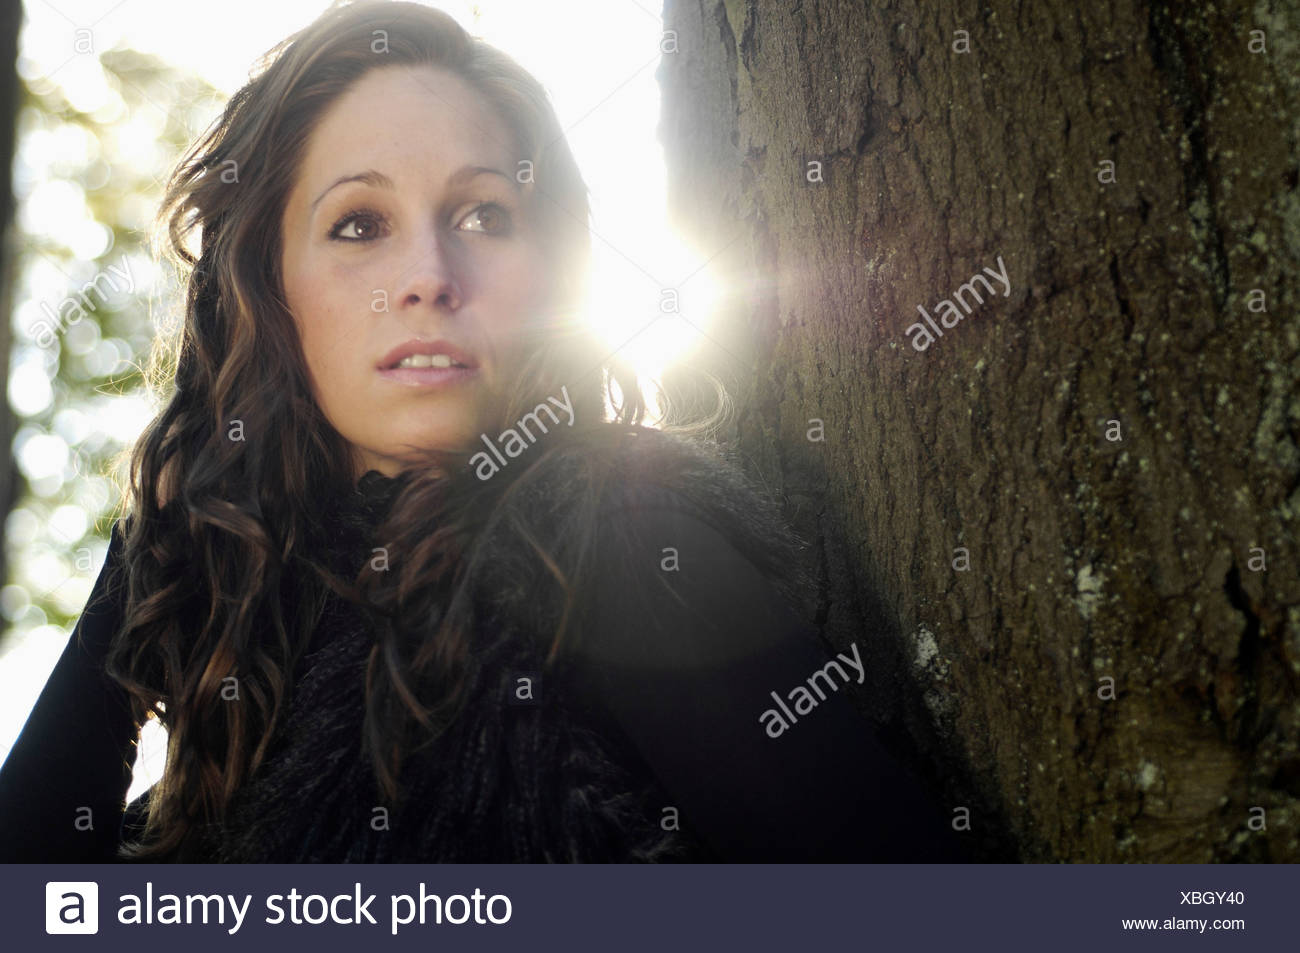 Portrait of young woman by tree trunk in autumn - Stock Image